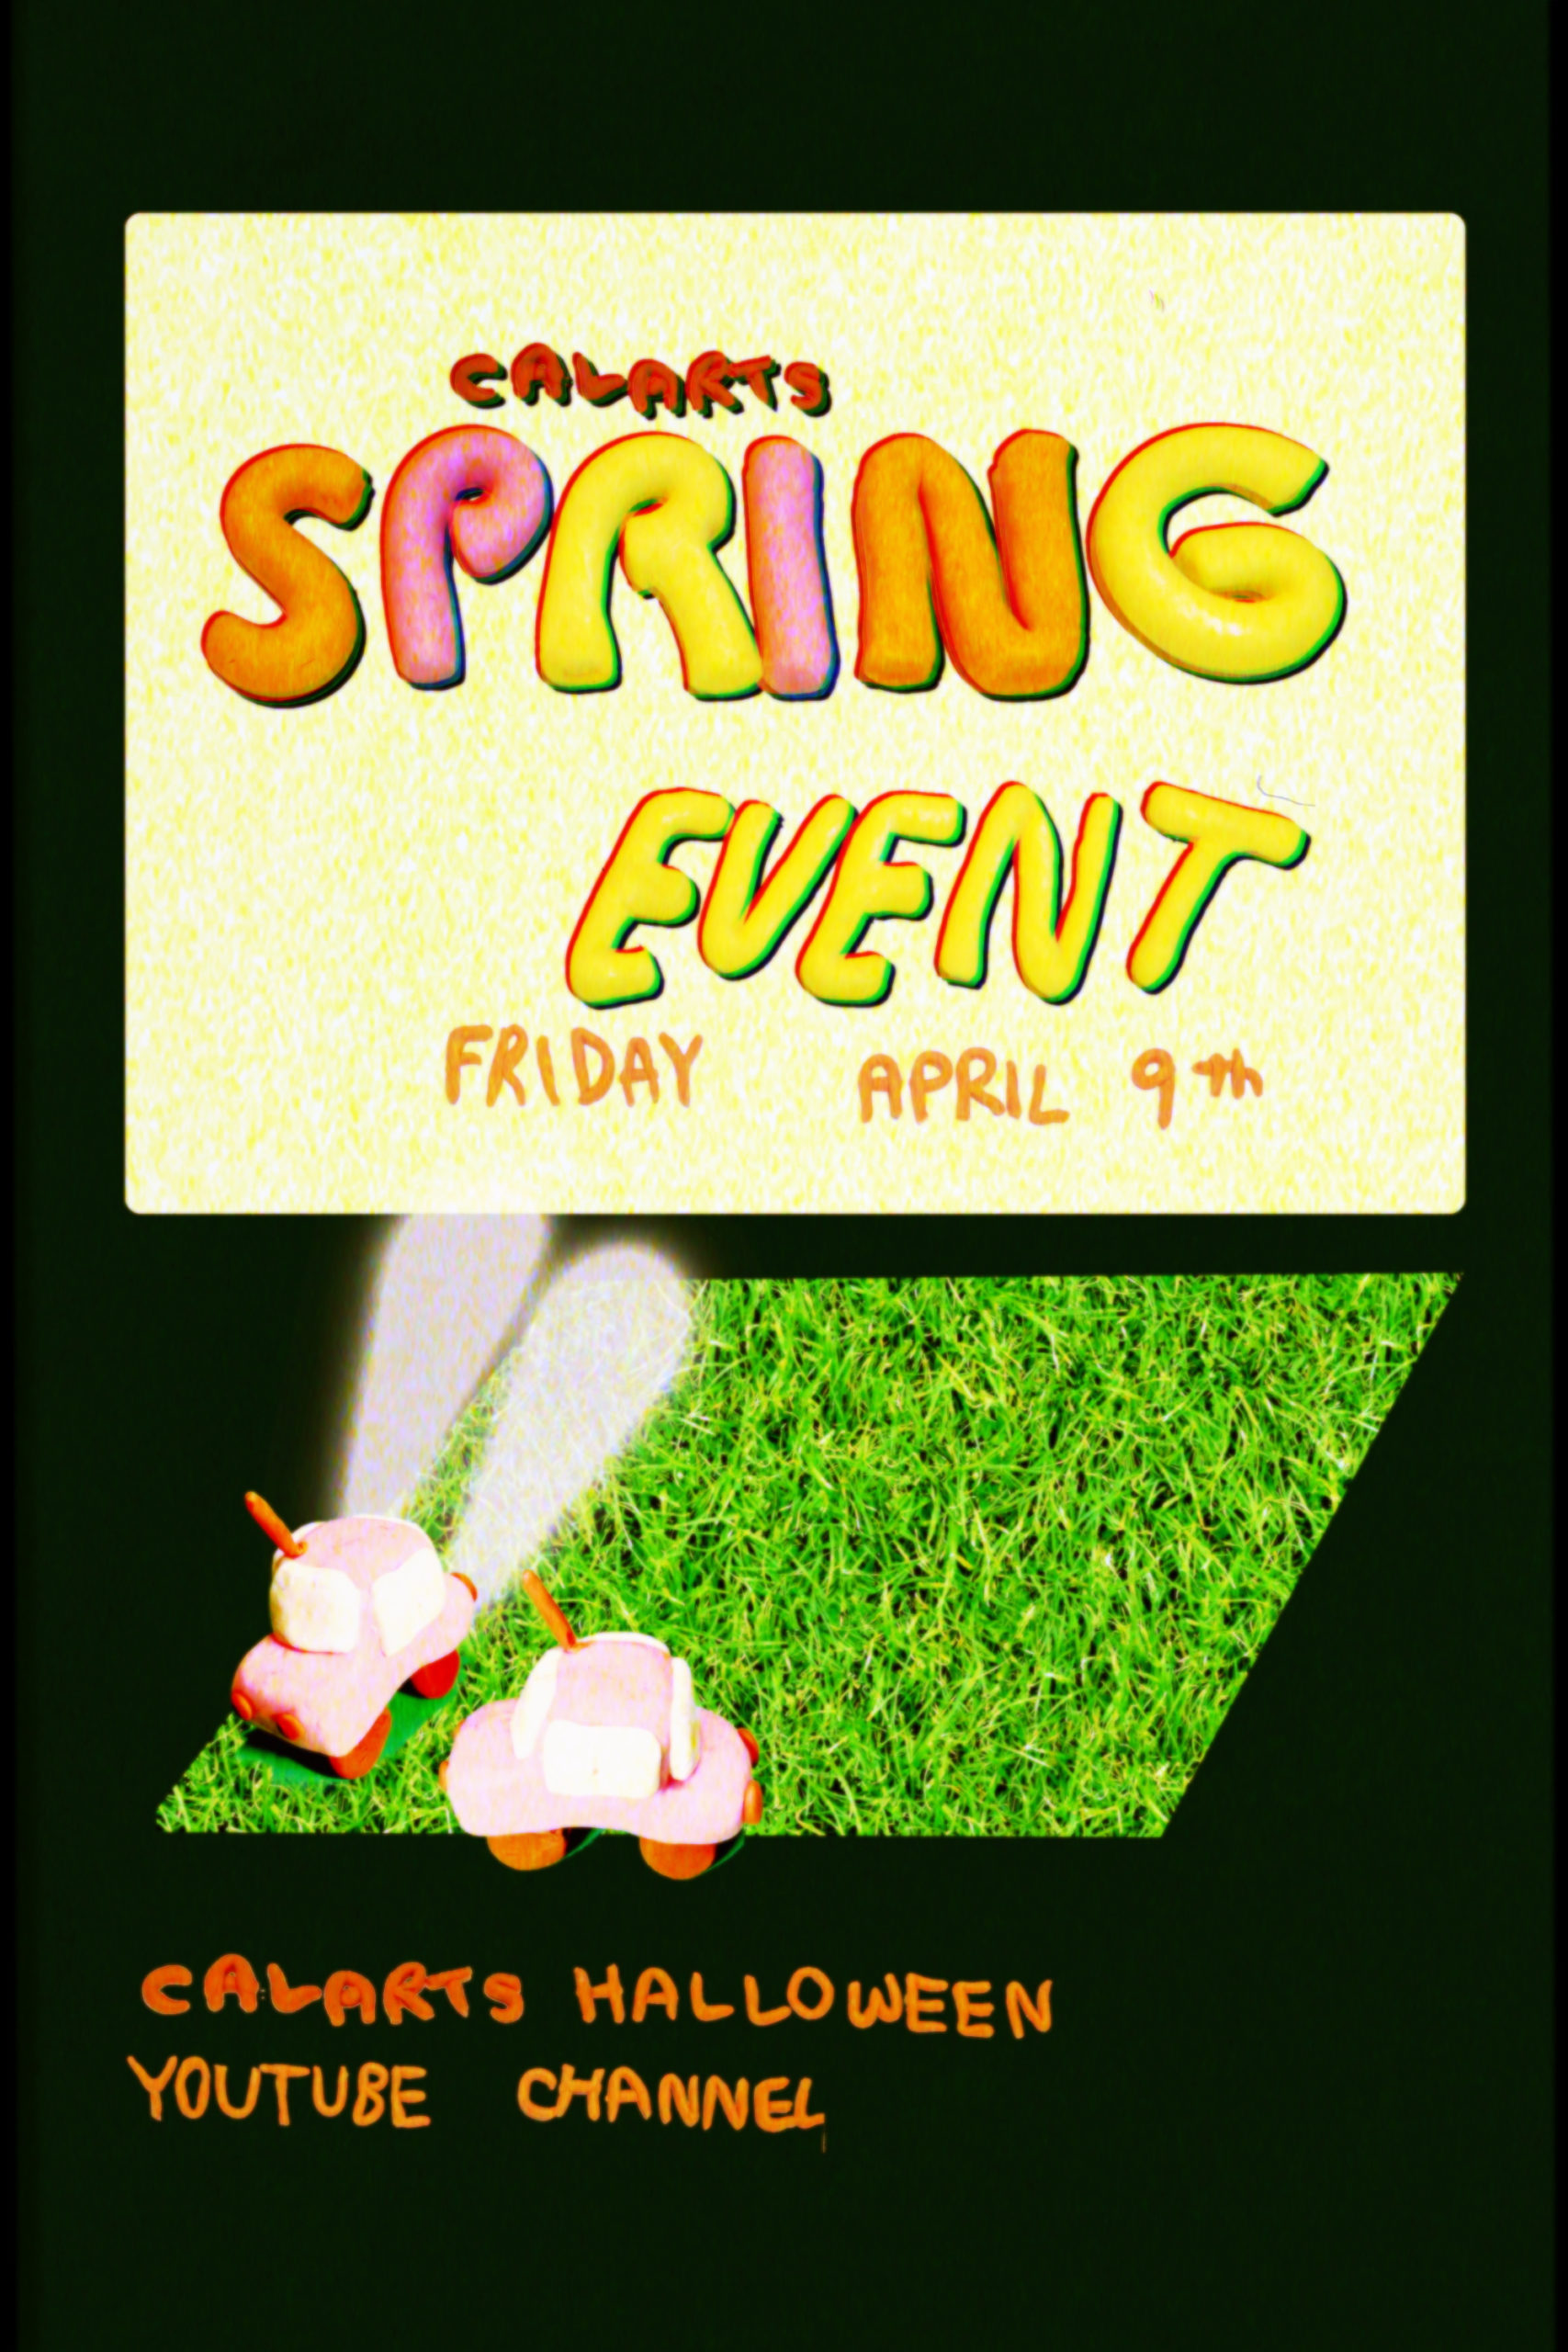 """Claymation cars at a drive-in where the screen says, """"CalArts Spring Event Friday April 9th"""" and """"CalArts Halloween YouTube Channel"""""""